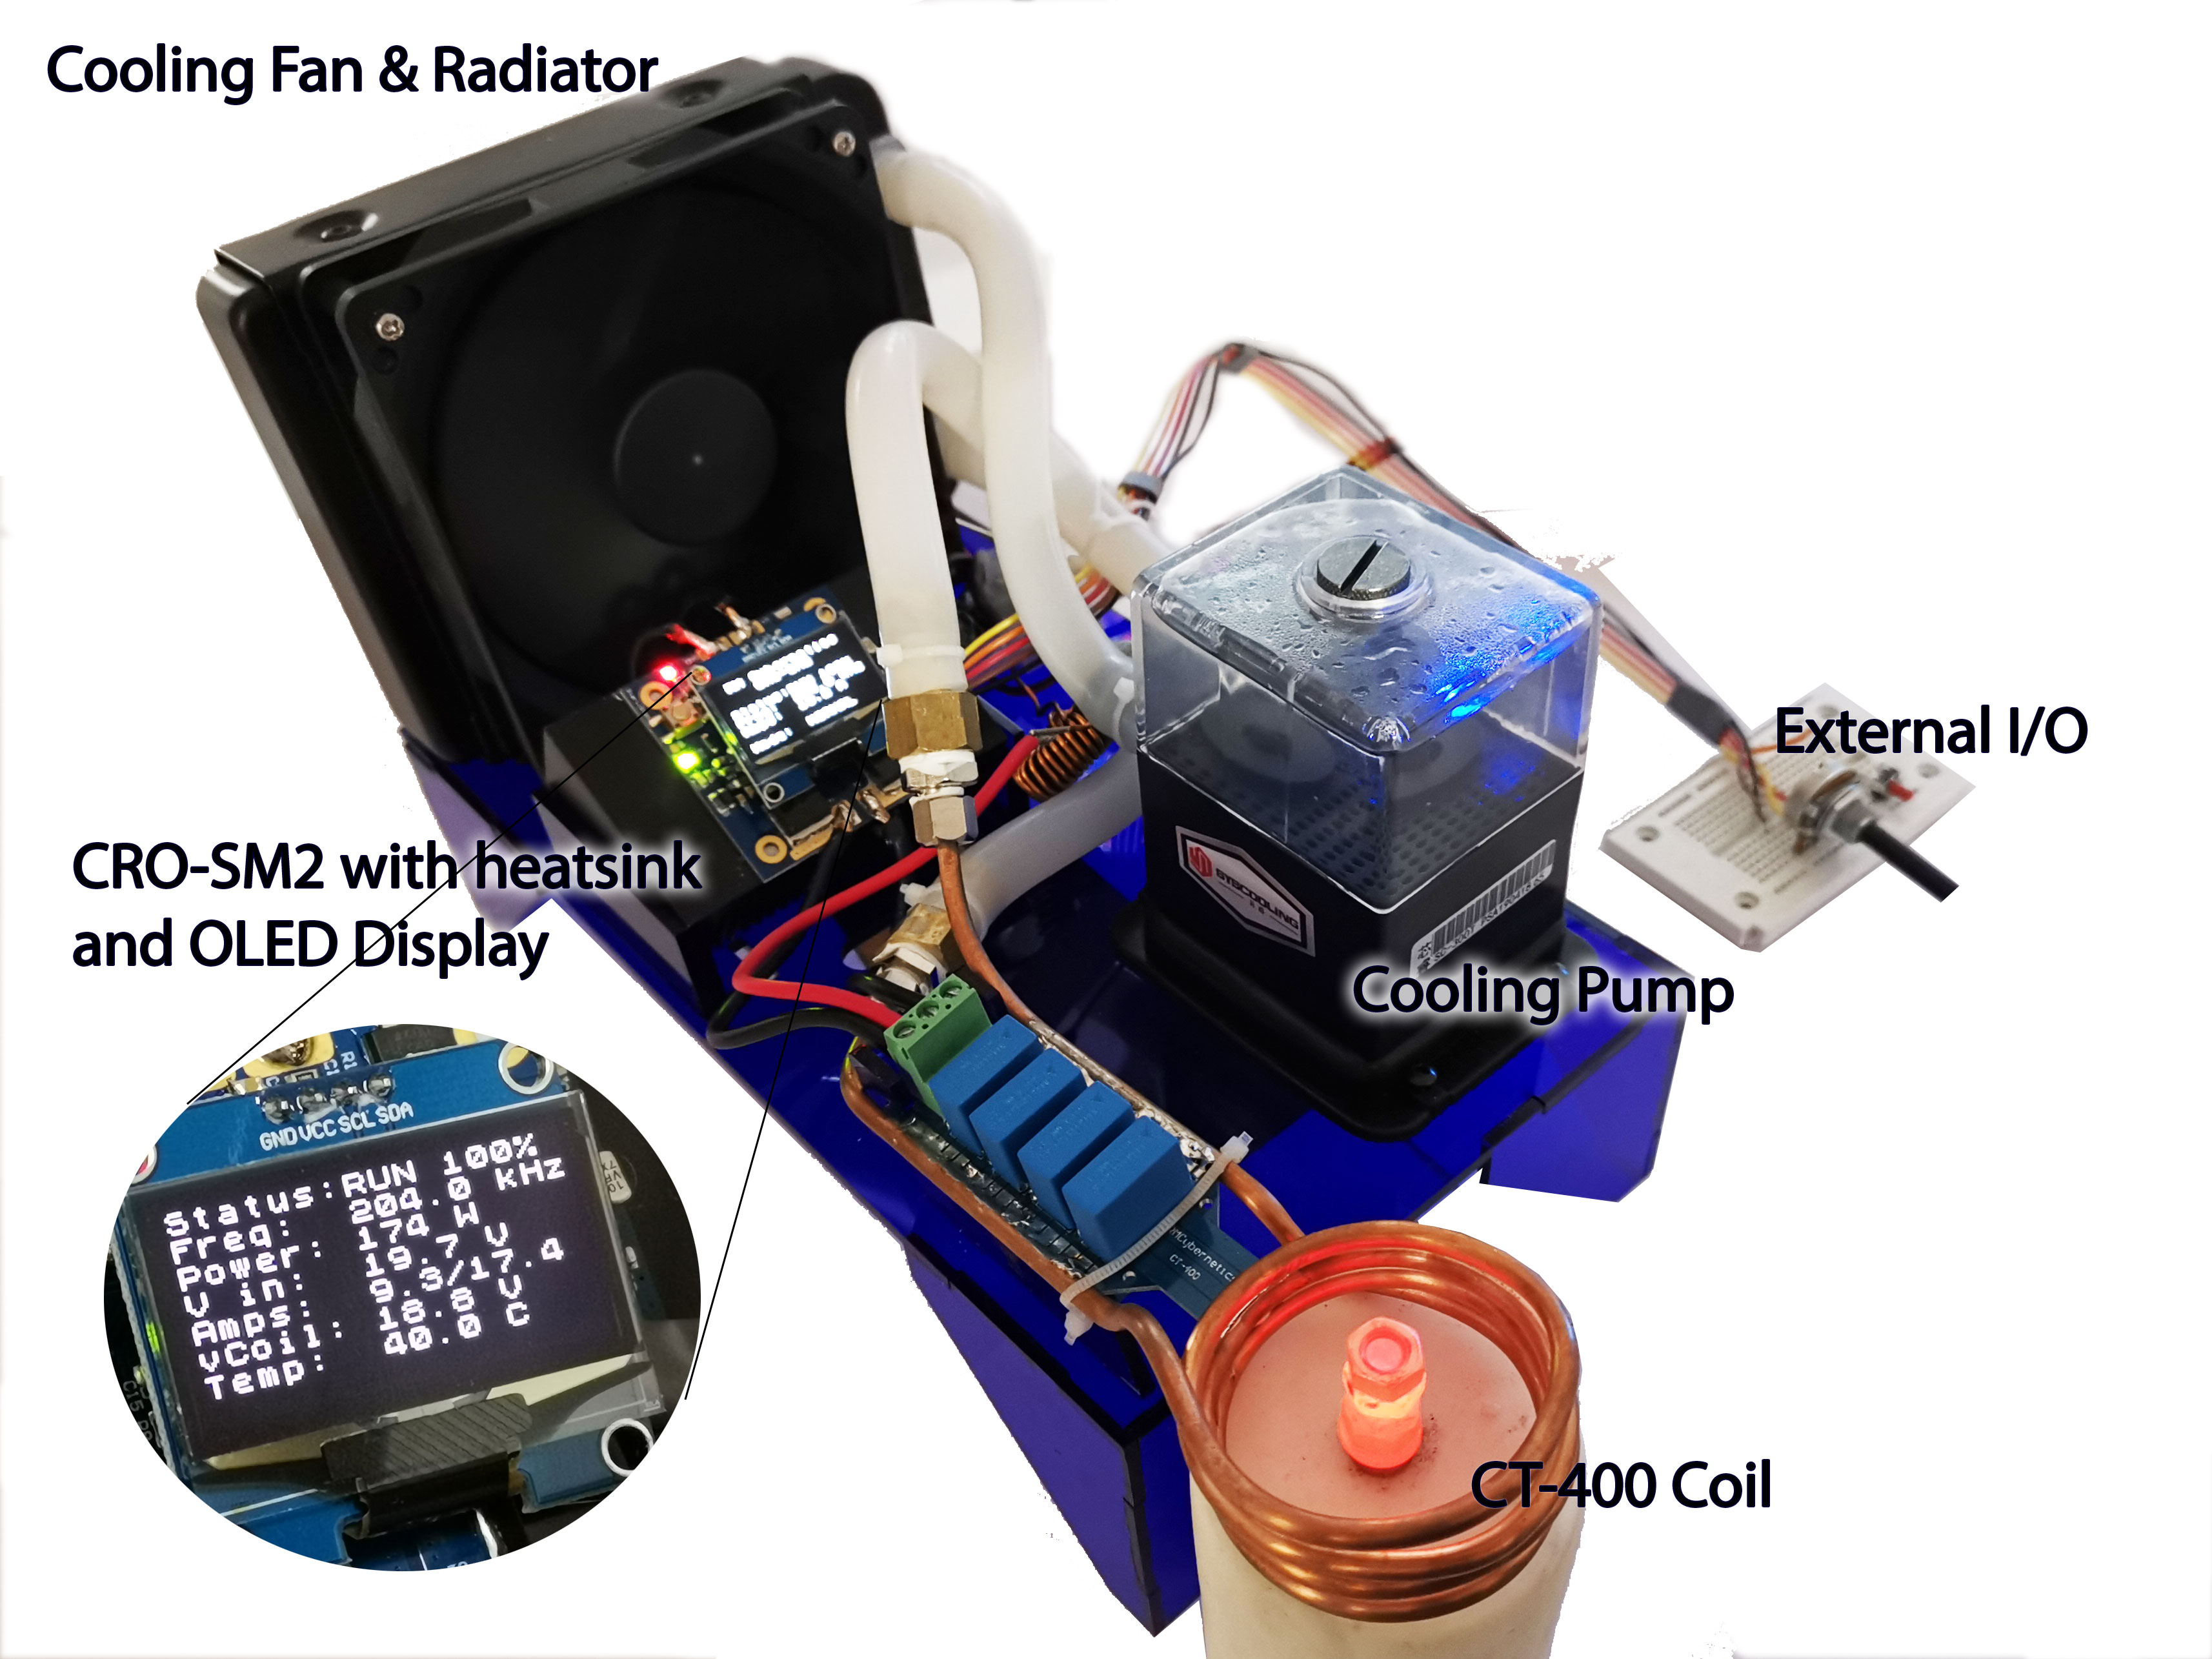 small induction heater